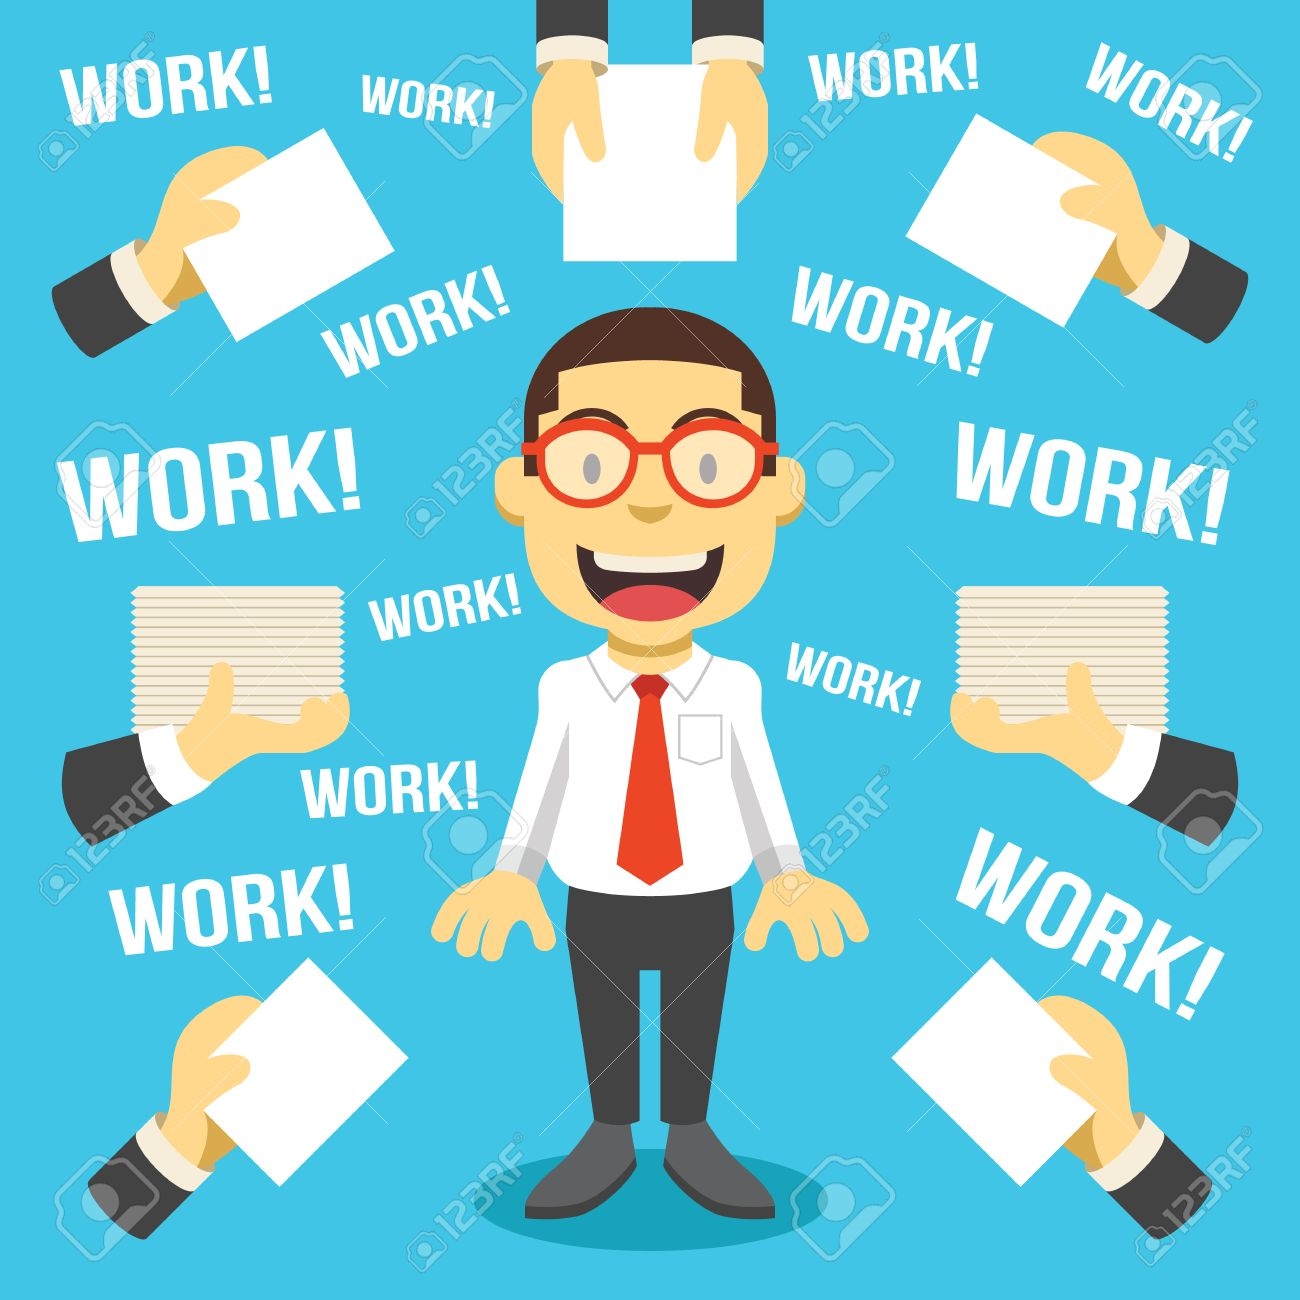 workaholic or workafrolic